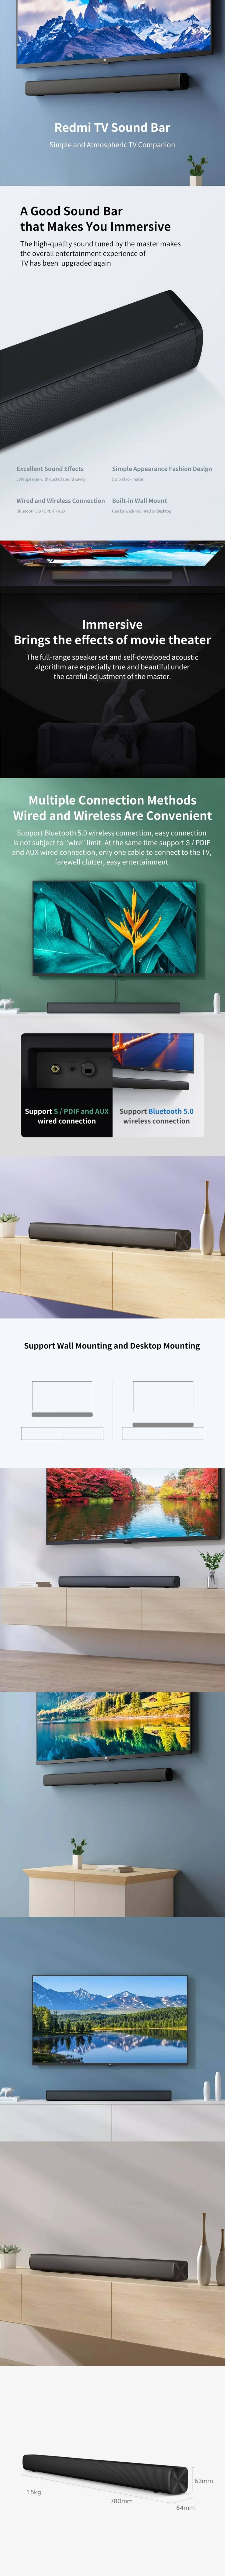 Xiaomi-Redmi-TV-Soundbar30144297d3dd3780.jpg